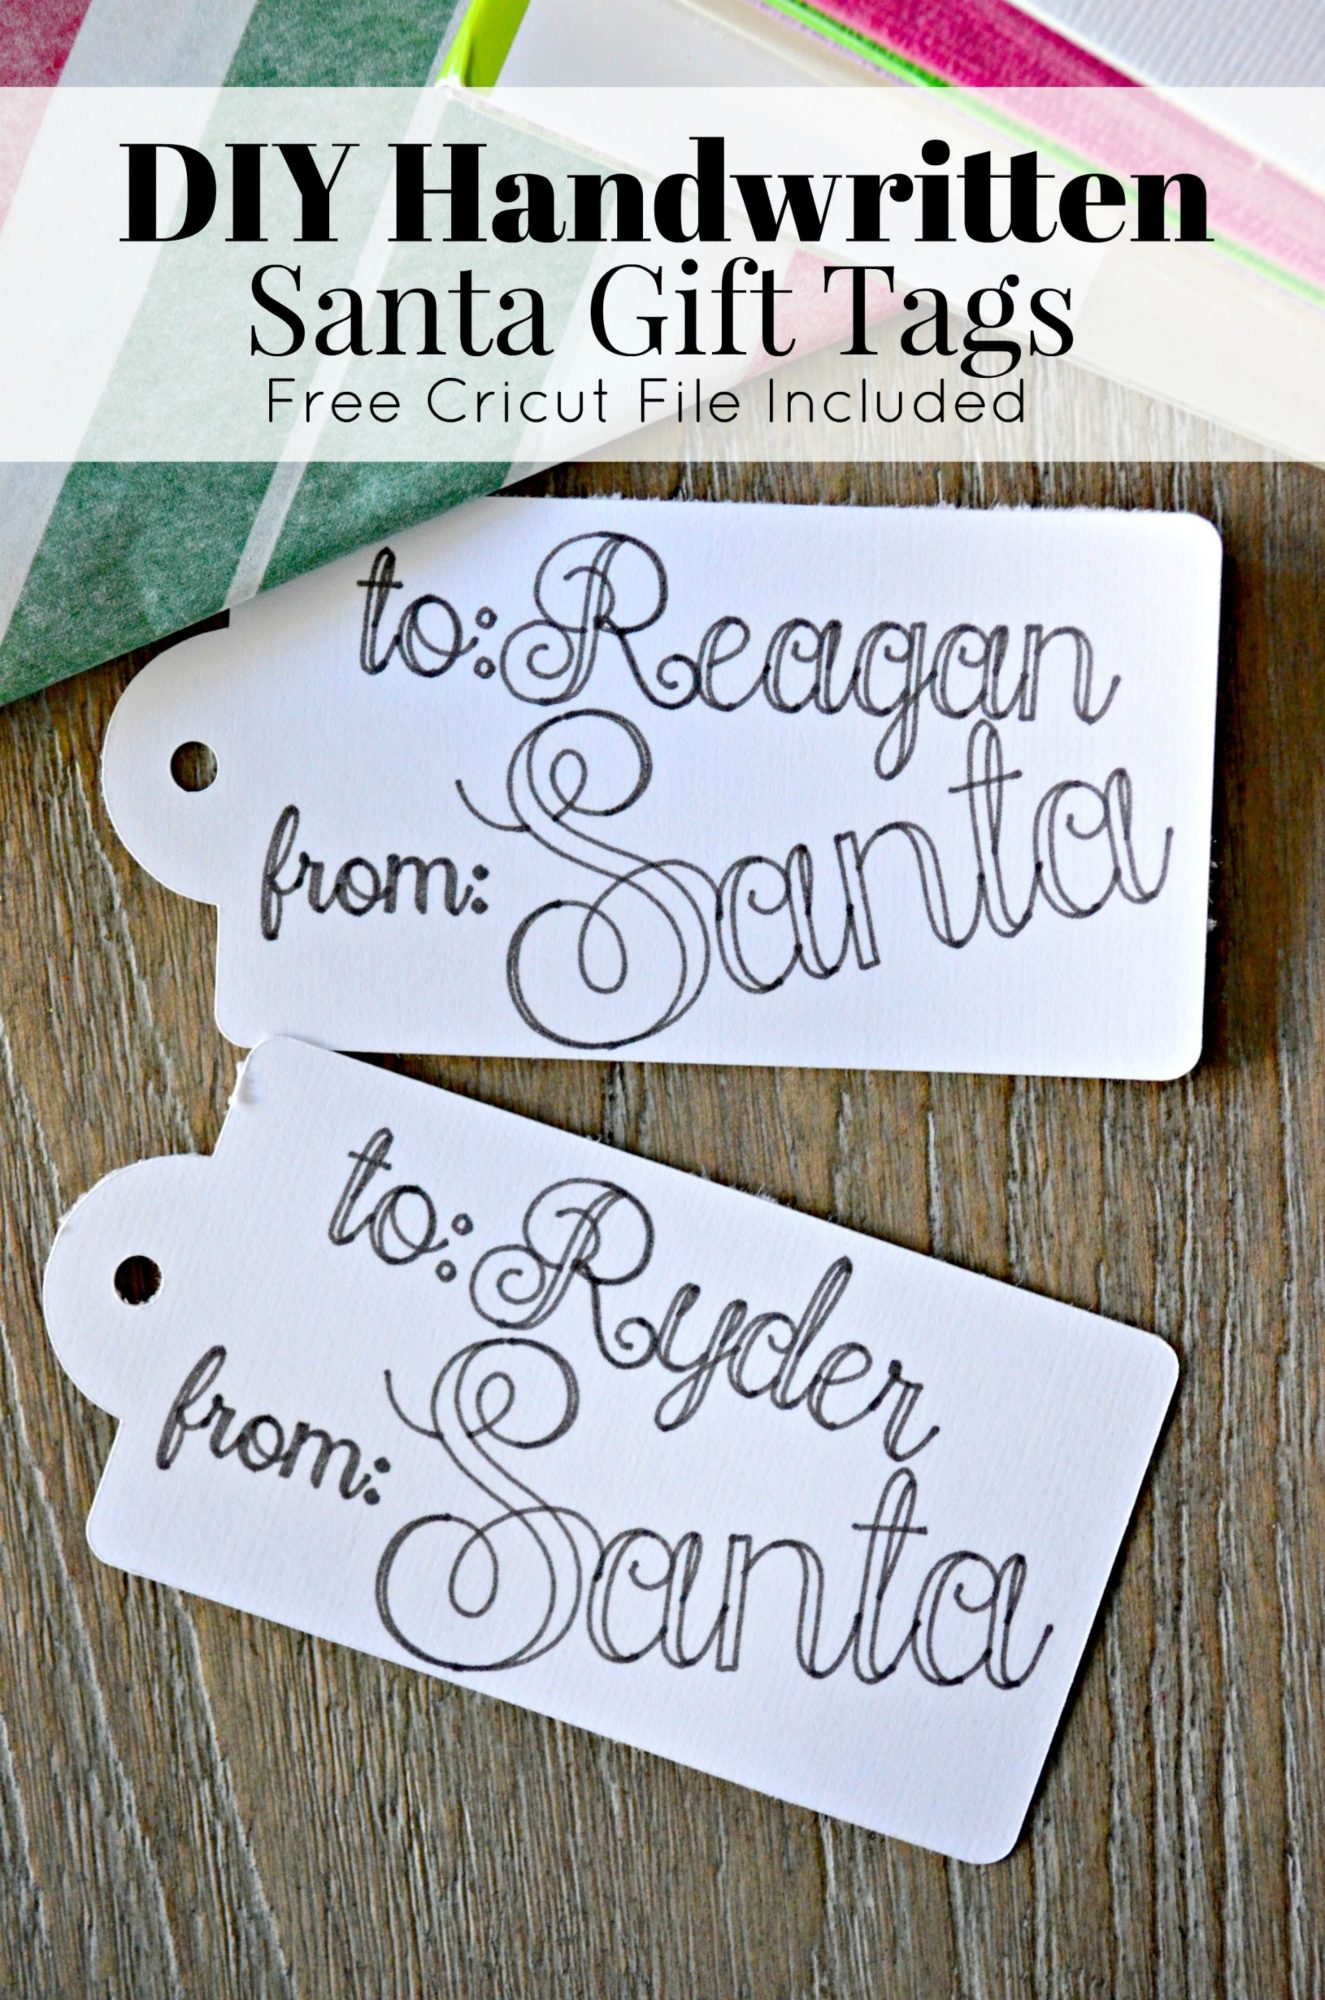 DIY Handwritten Santa Gift Tags made with a Cricut